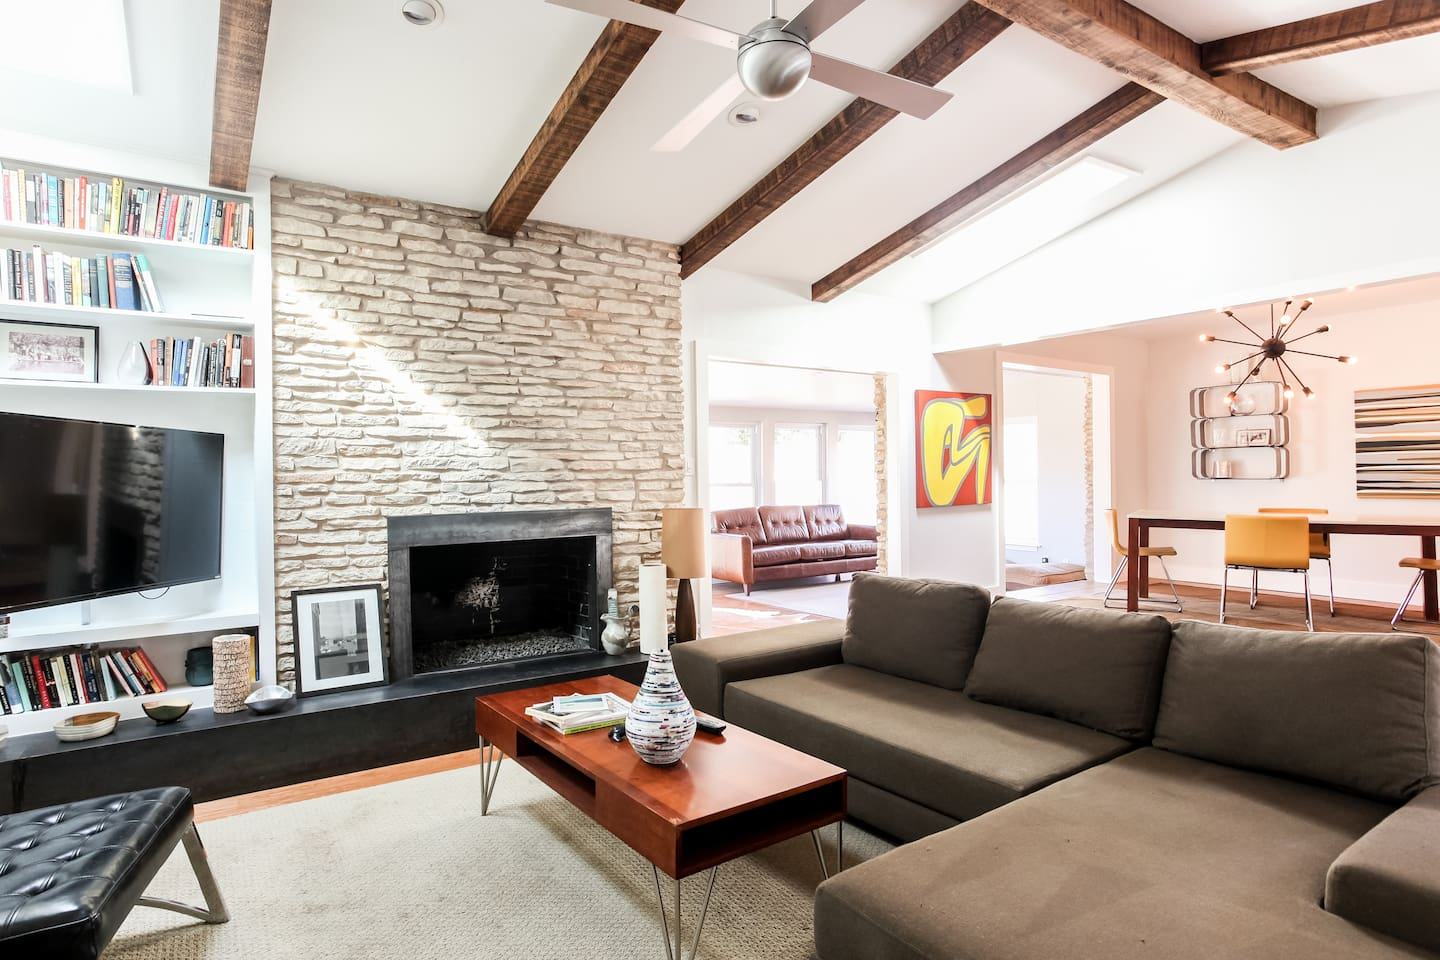 Guests are encouraged to take advantage of an expansive living area